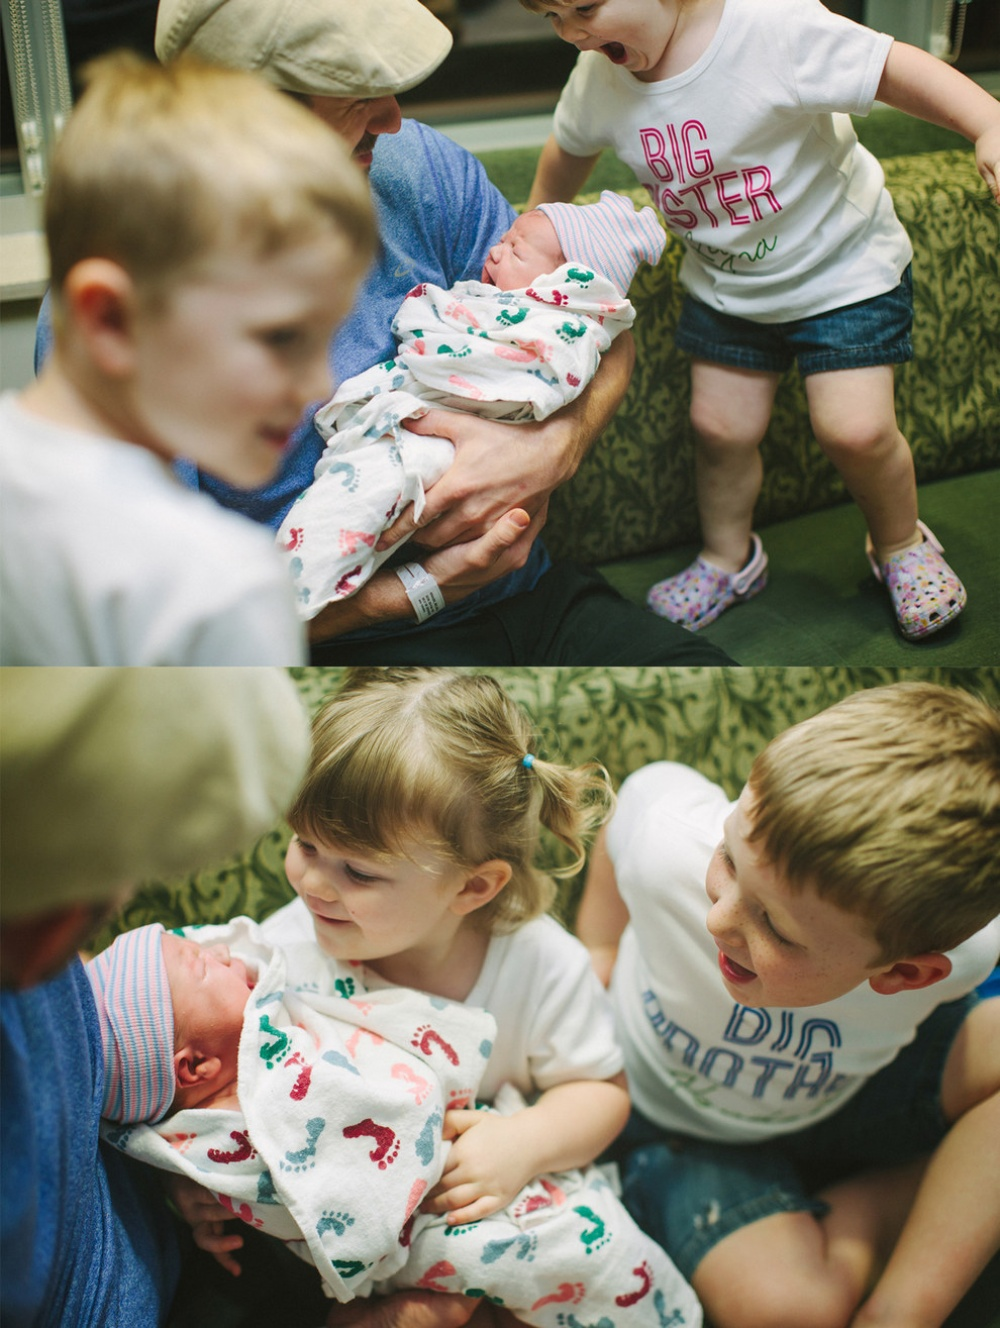 Children-see-their-newborn-siblings-for-the-first-time-23